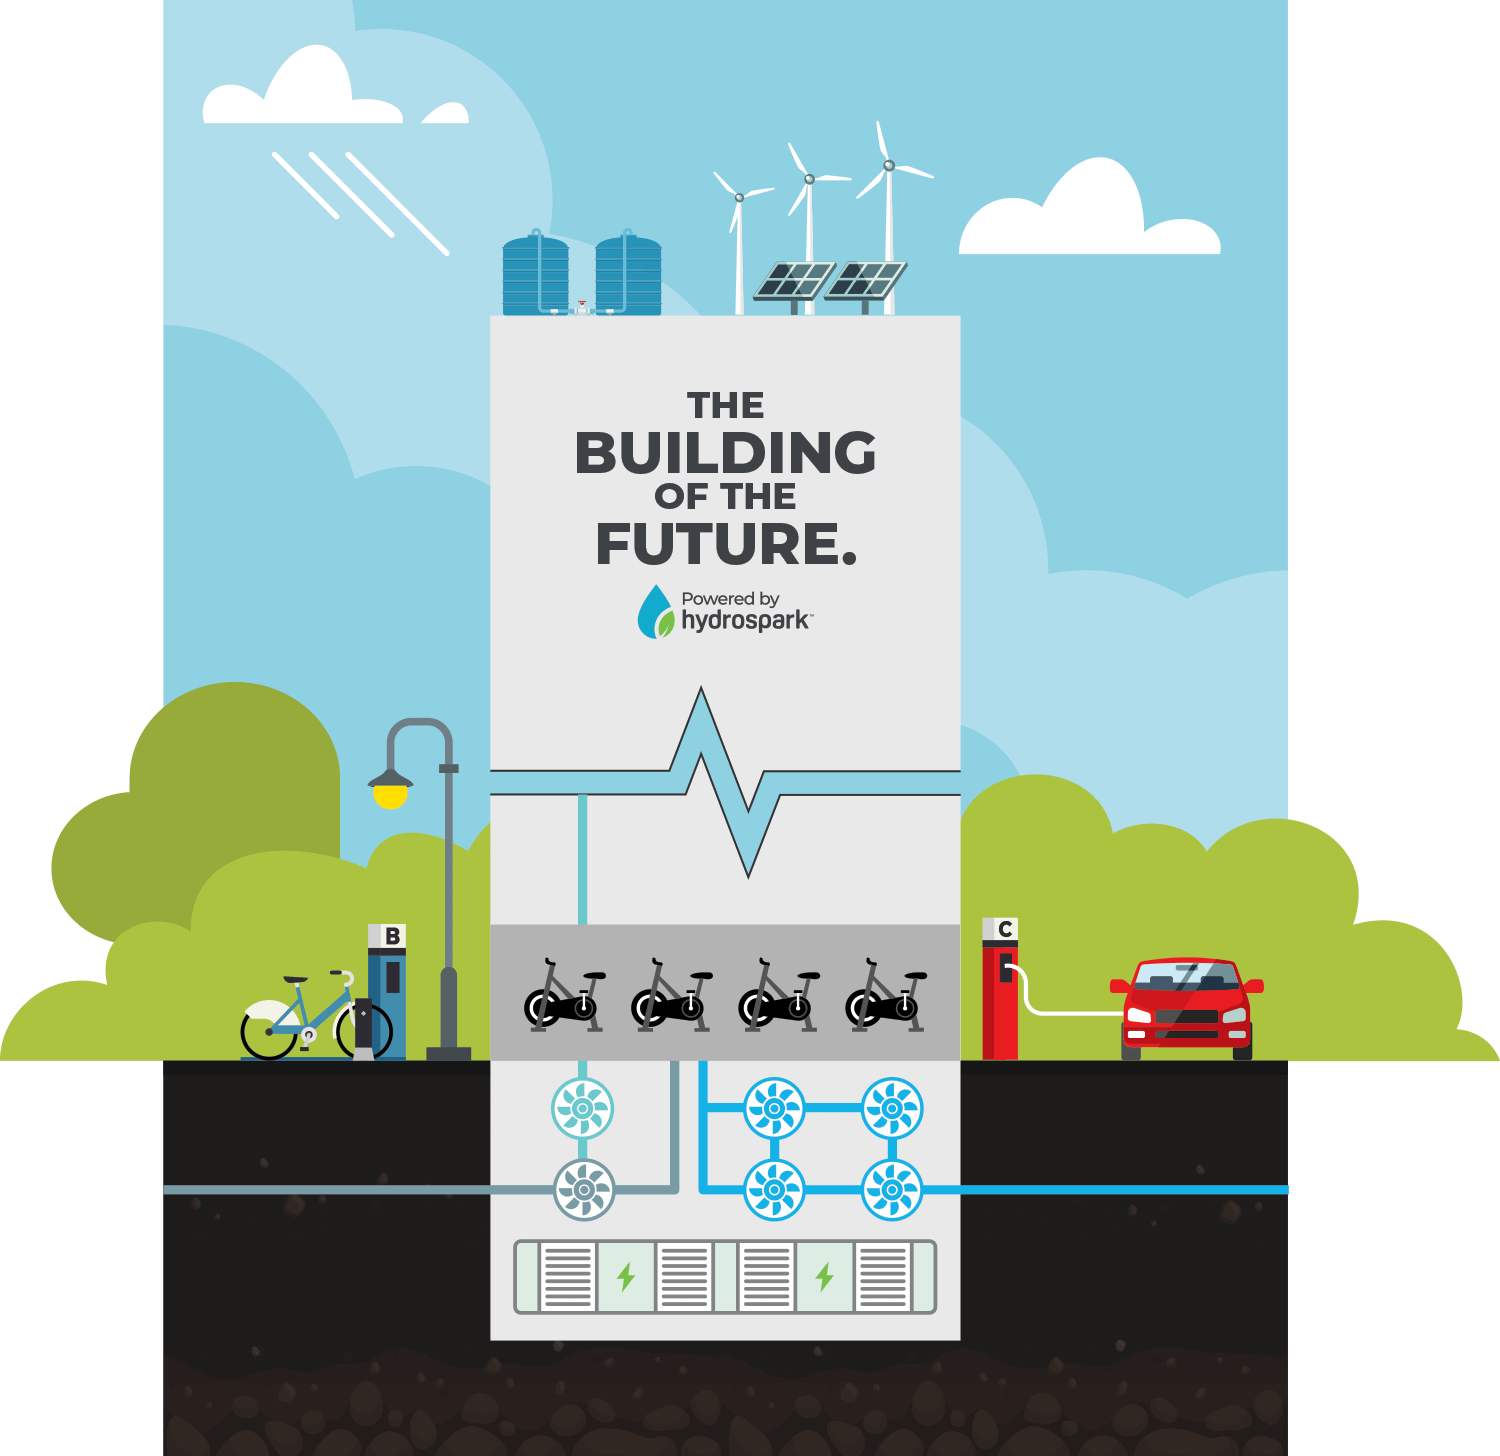 The Building of the Future, Powered by Hydrospark